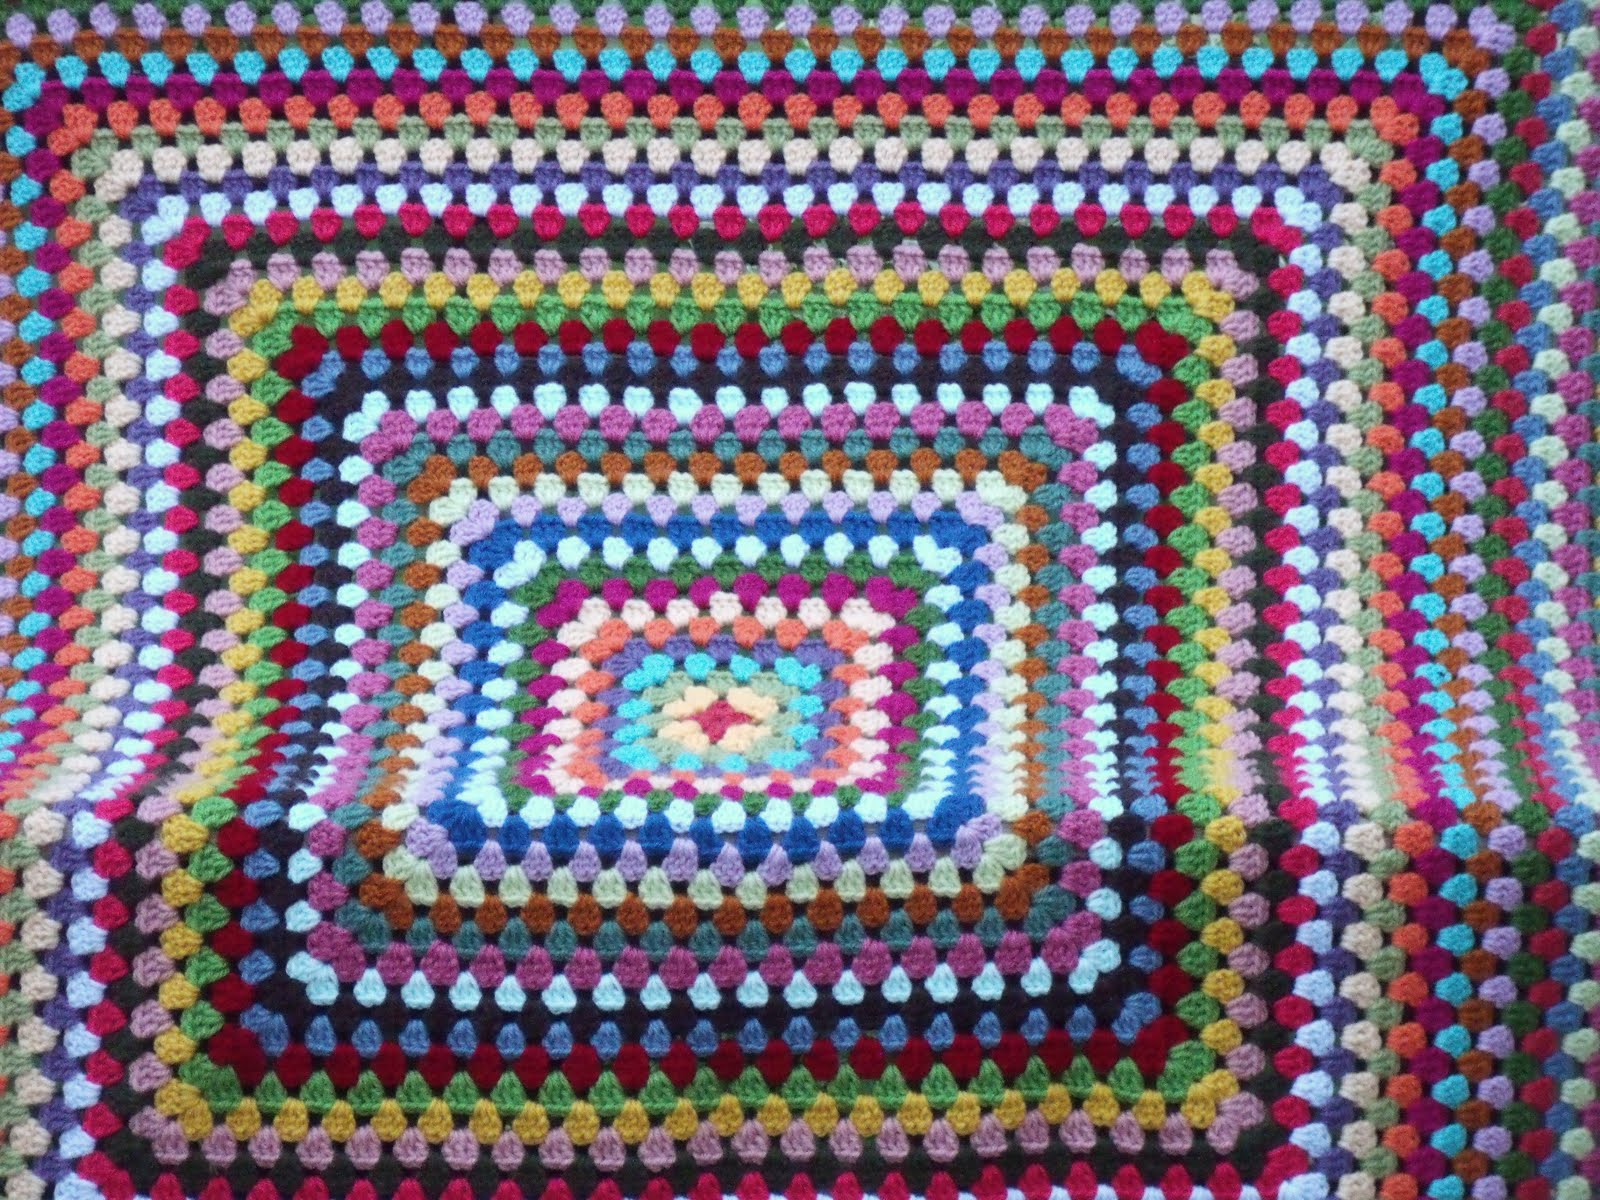 Crocheting Granny Square Blanket : Granny Square Afghan Tutorial